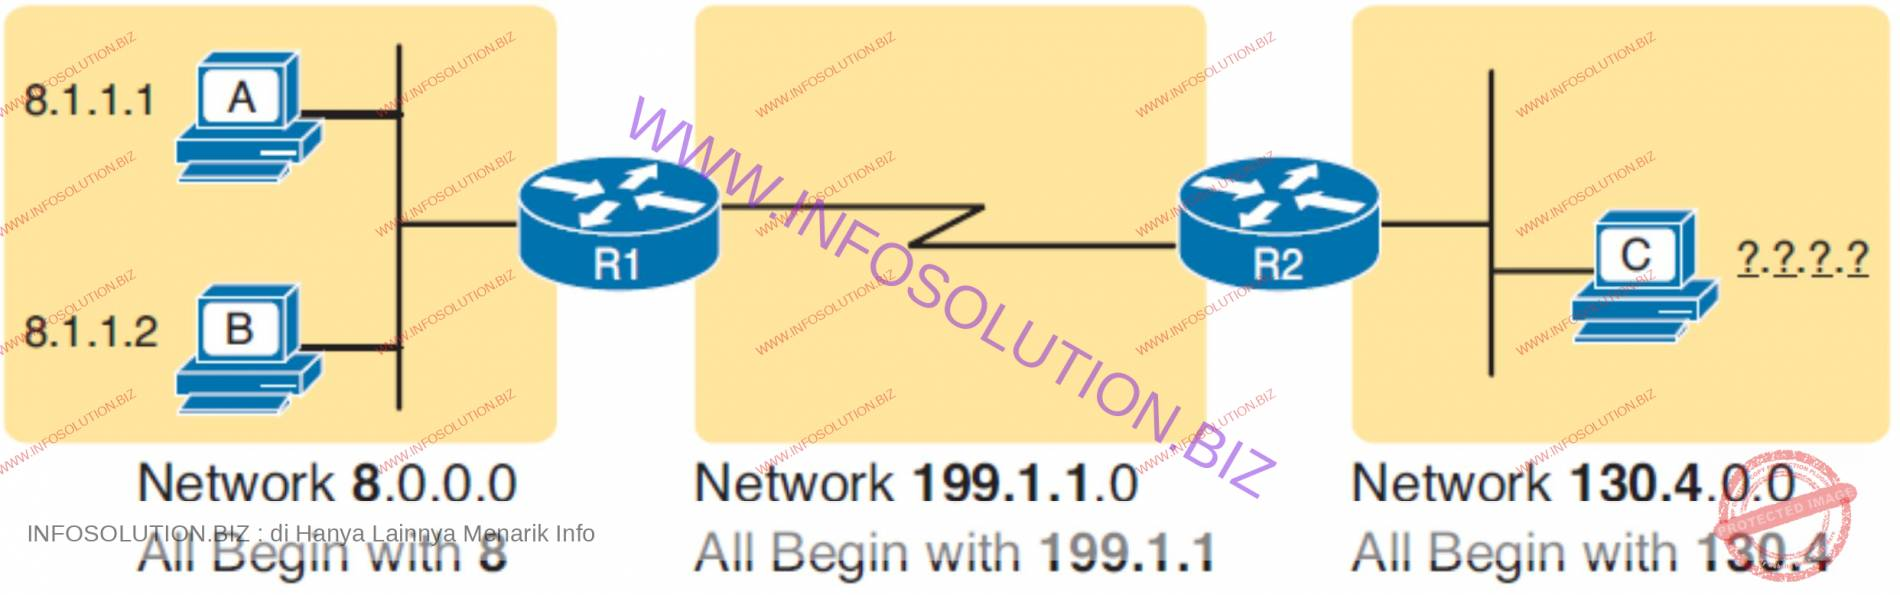 Rules for Grouping IP Addresses